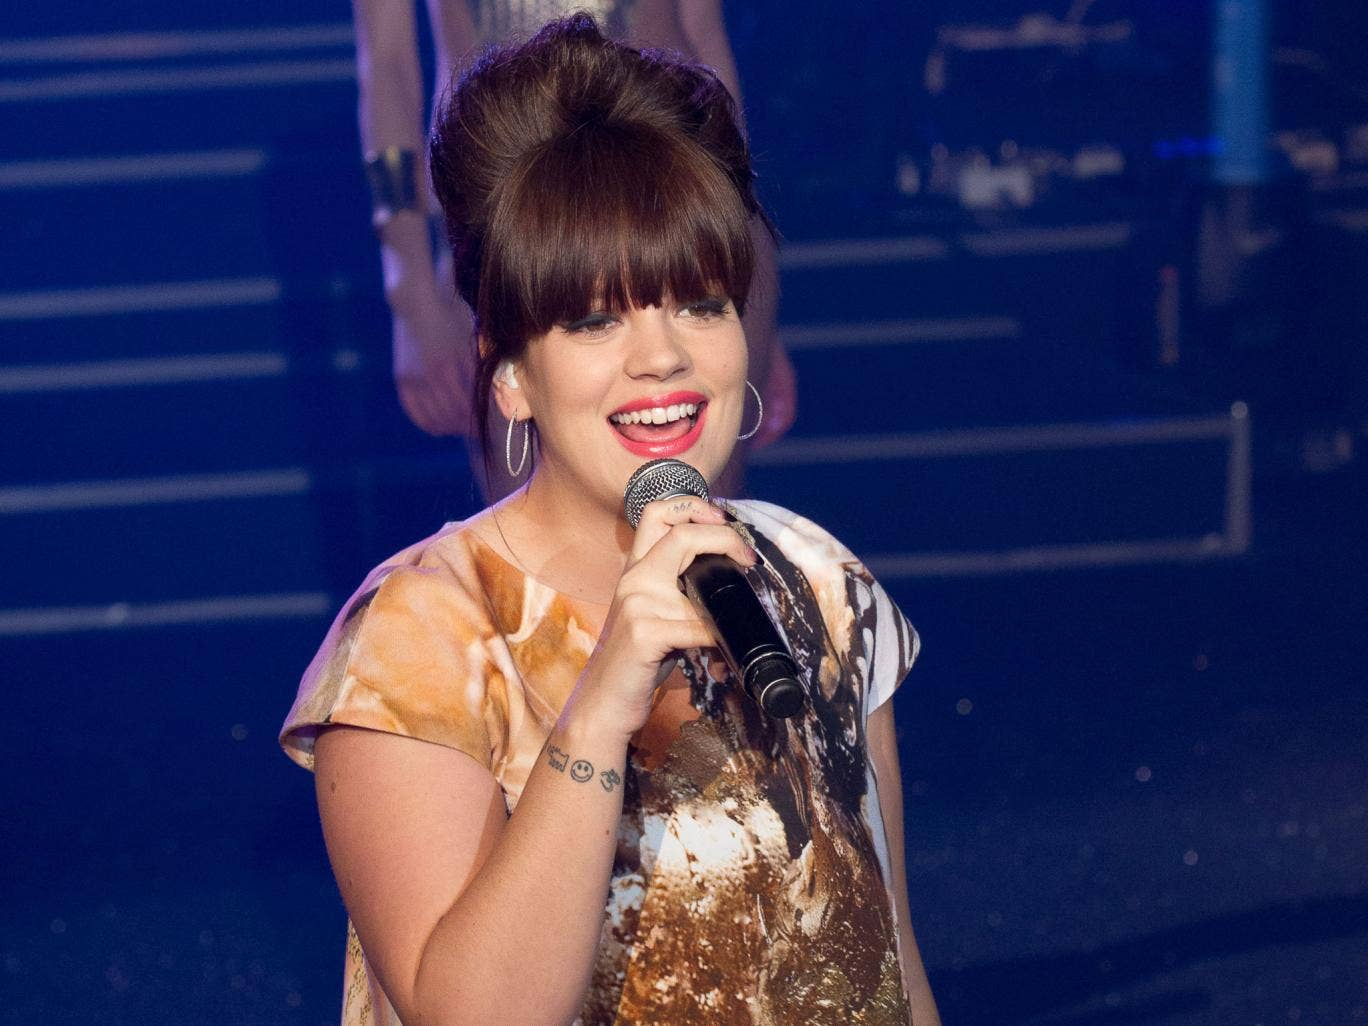 Lily Allen agreed with a fan on Twitter who called her Sheezus songs so far 'disappointing' and 'docile'